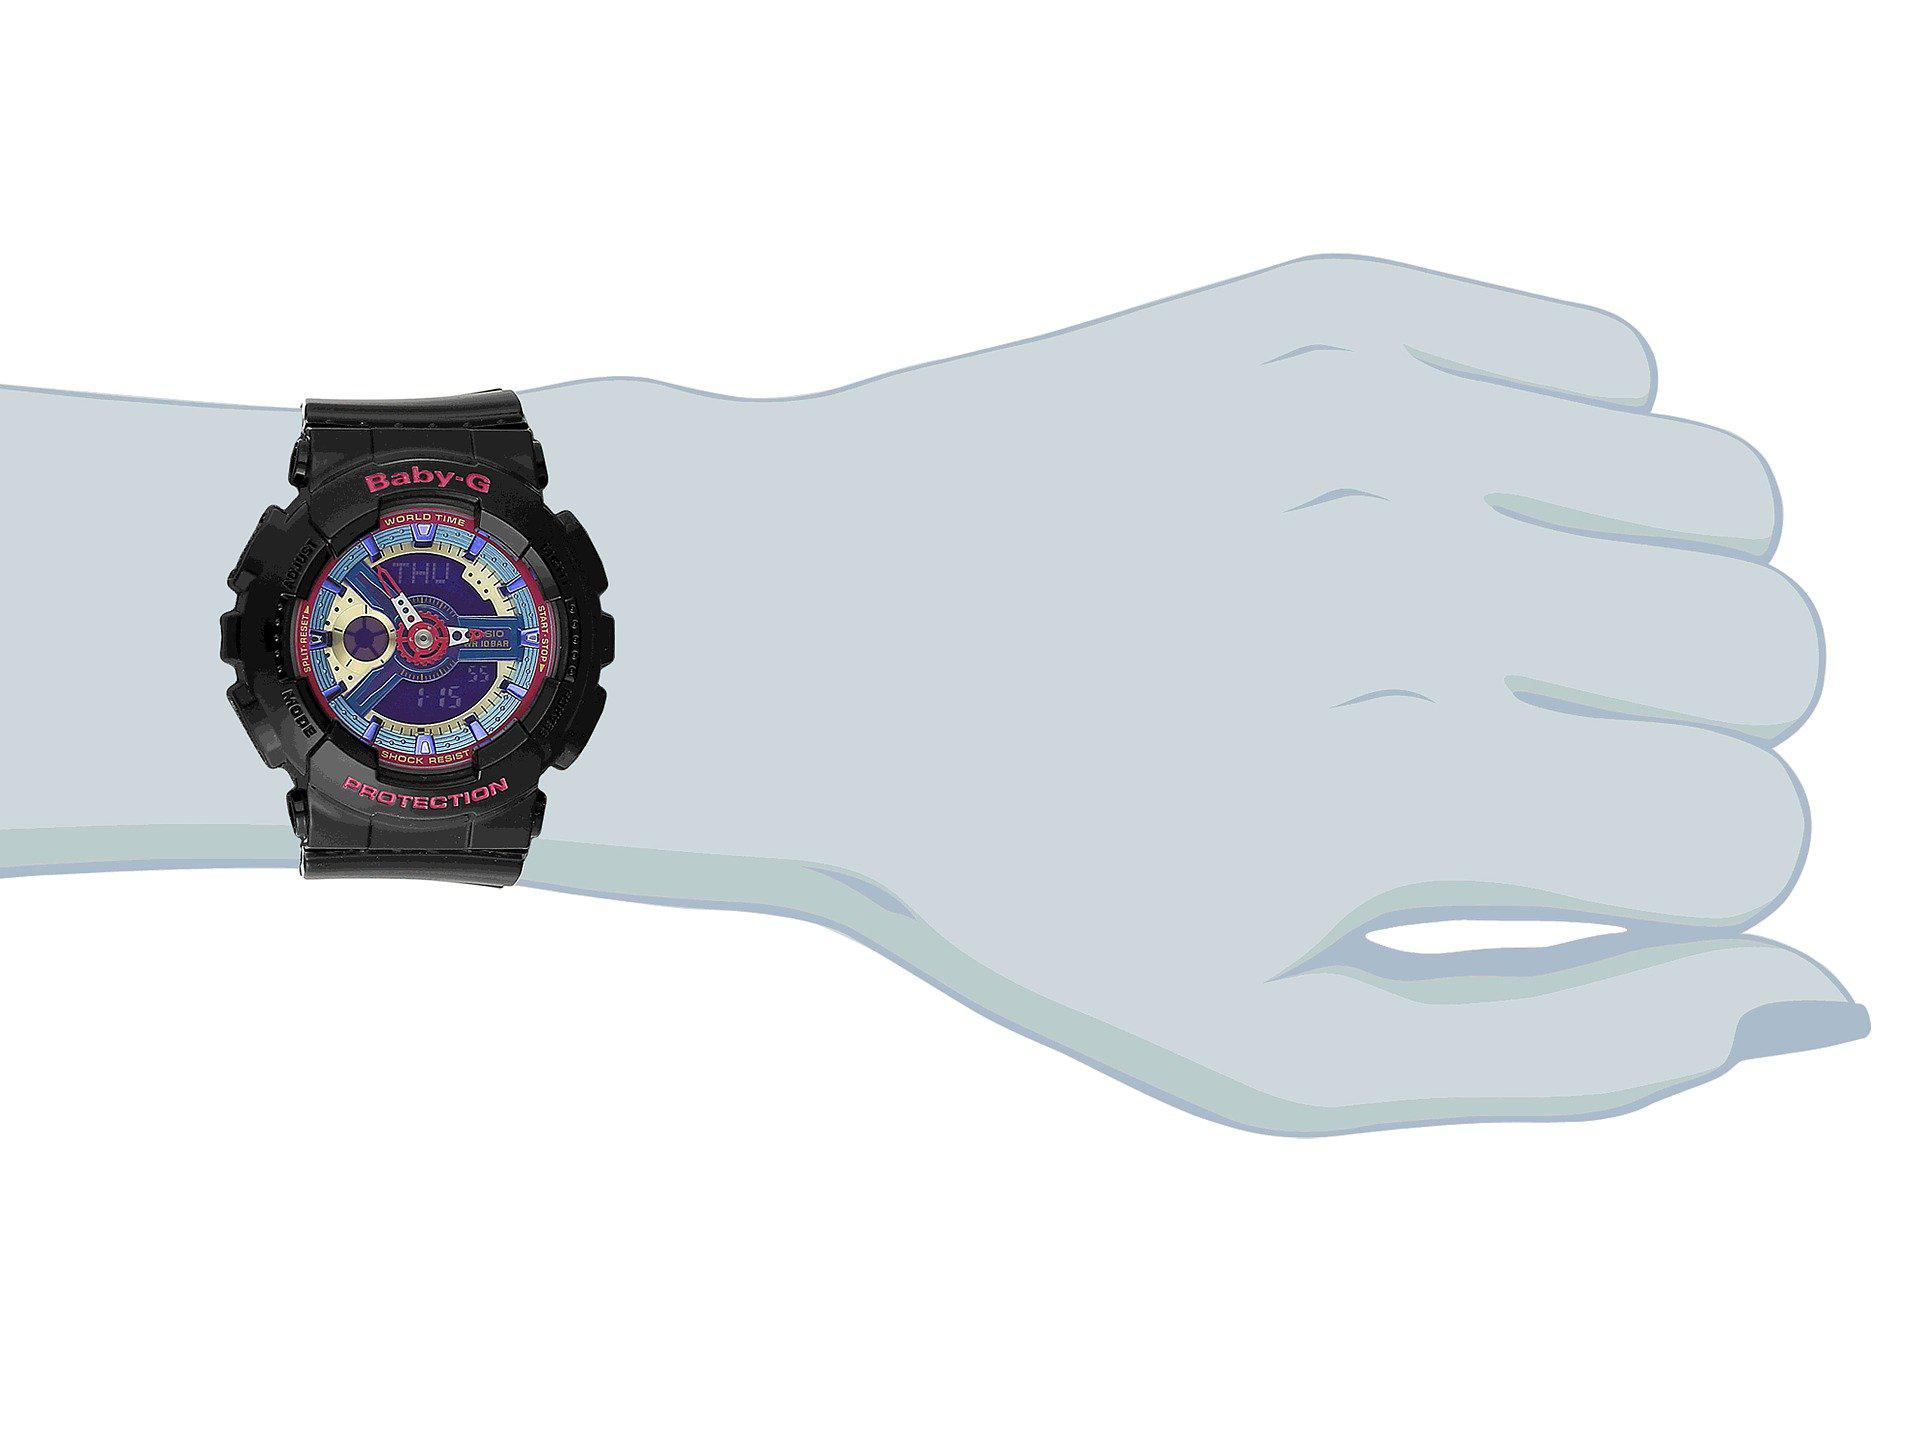 Lyst G Shock Ba112 In Black Casio Baby Ba 112 4a Gallery